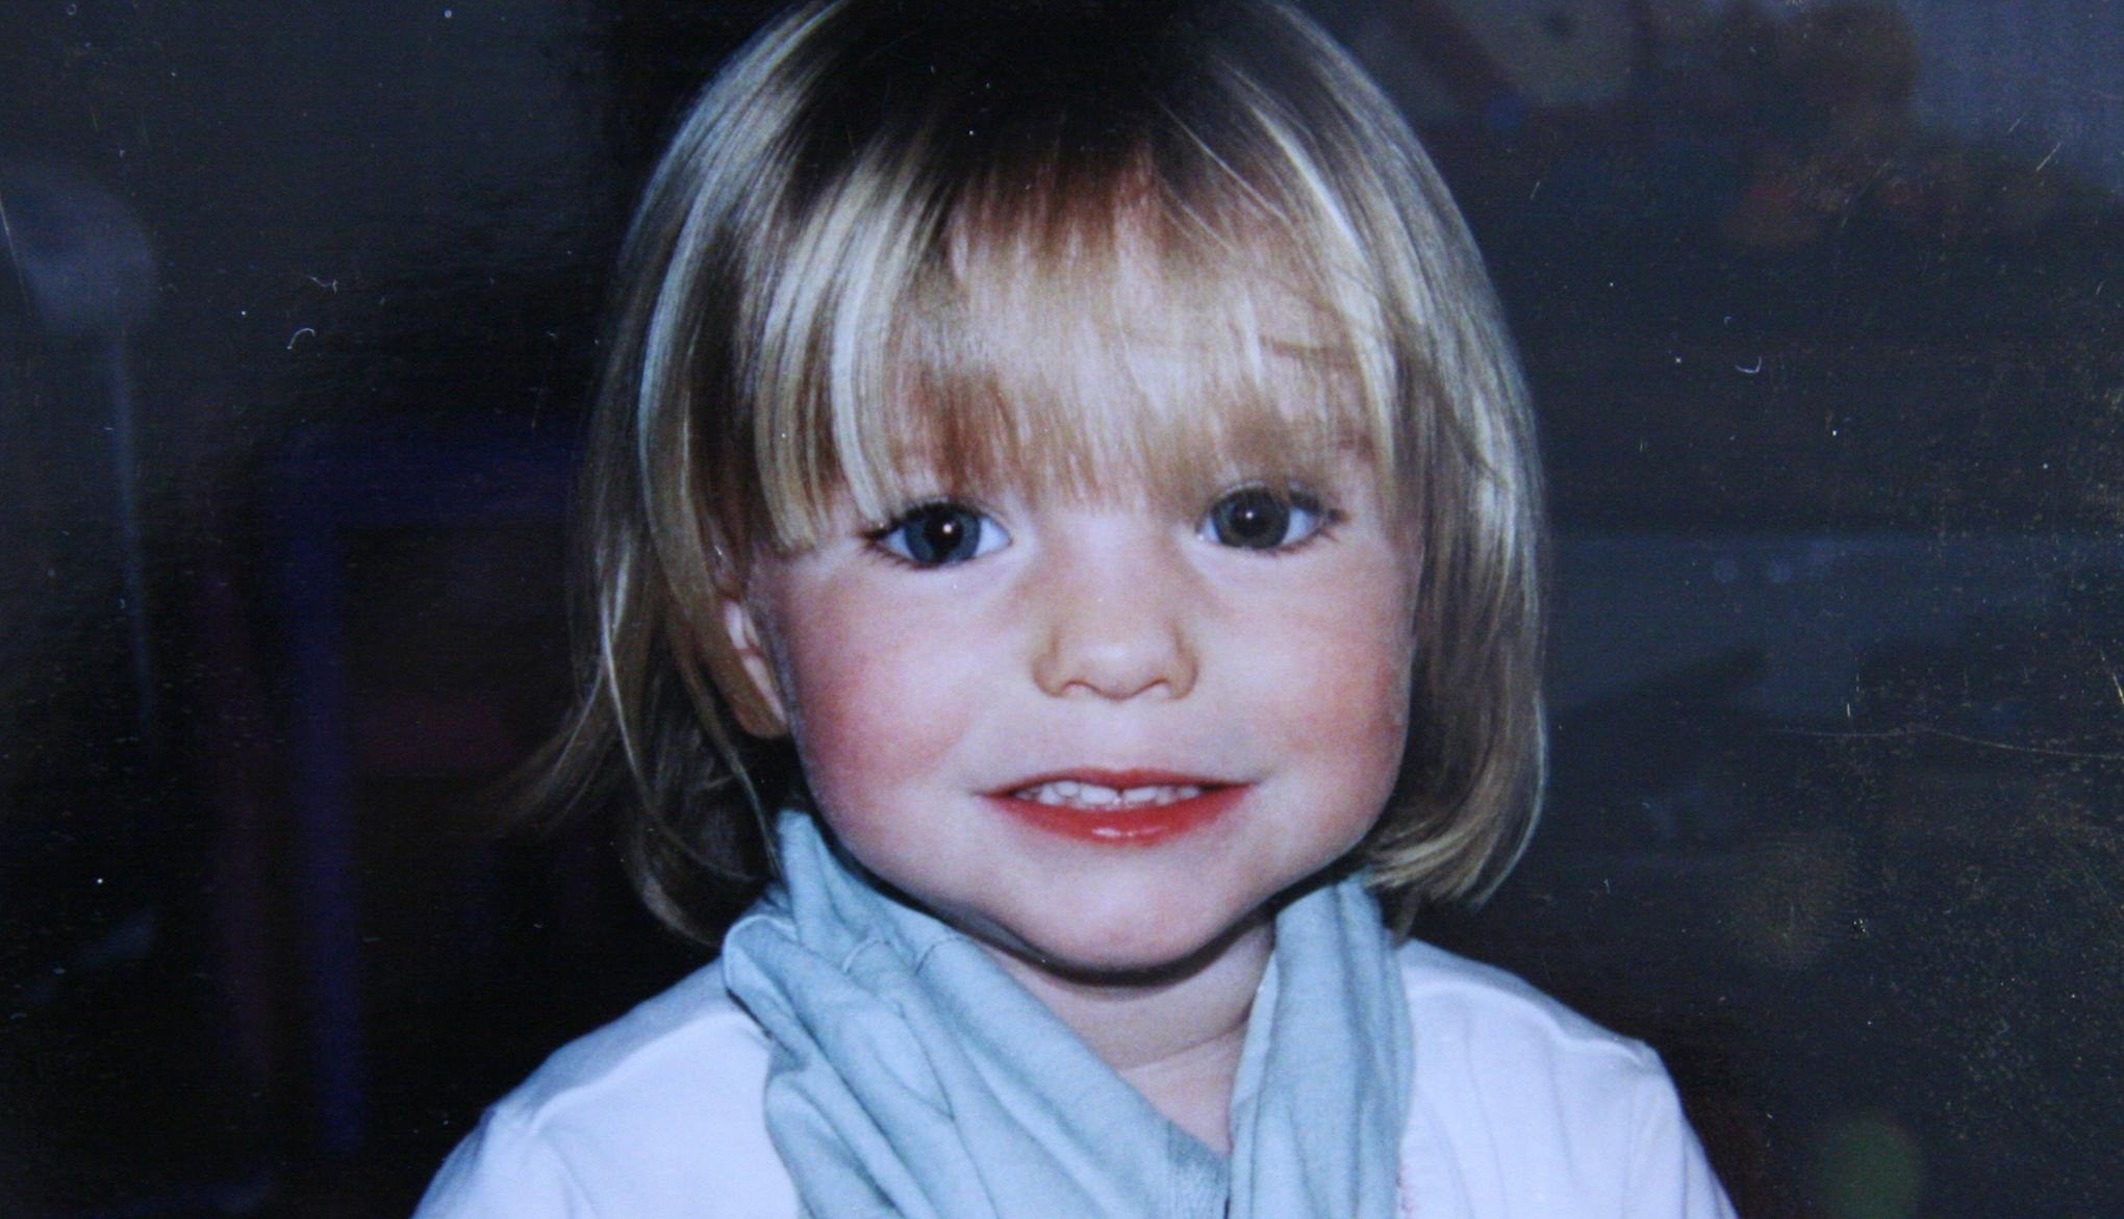 Missing Madeleine McCann baby photograph